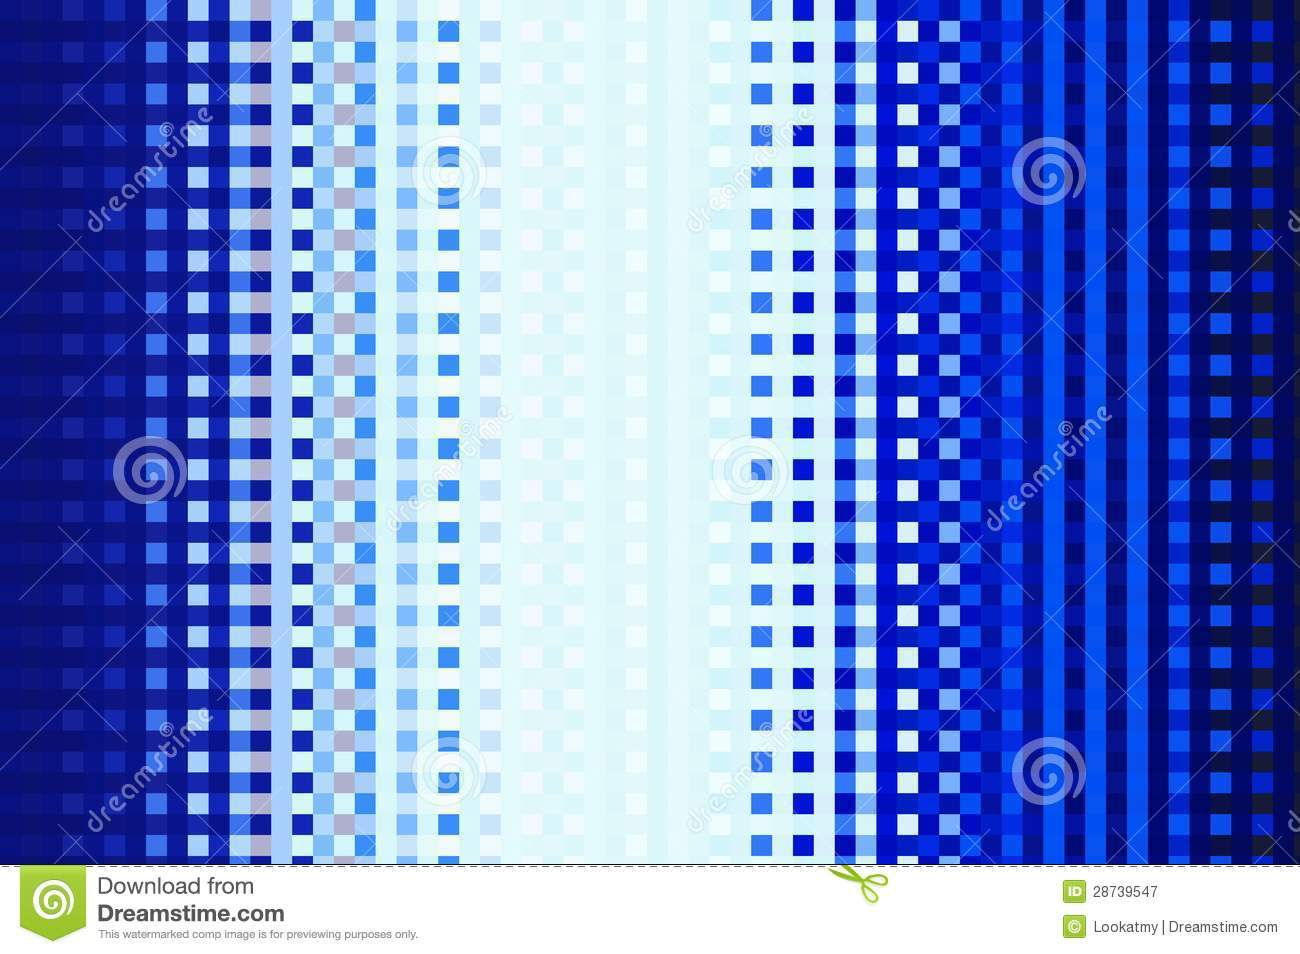 Blue checkered background stock illustration. Image of ...